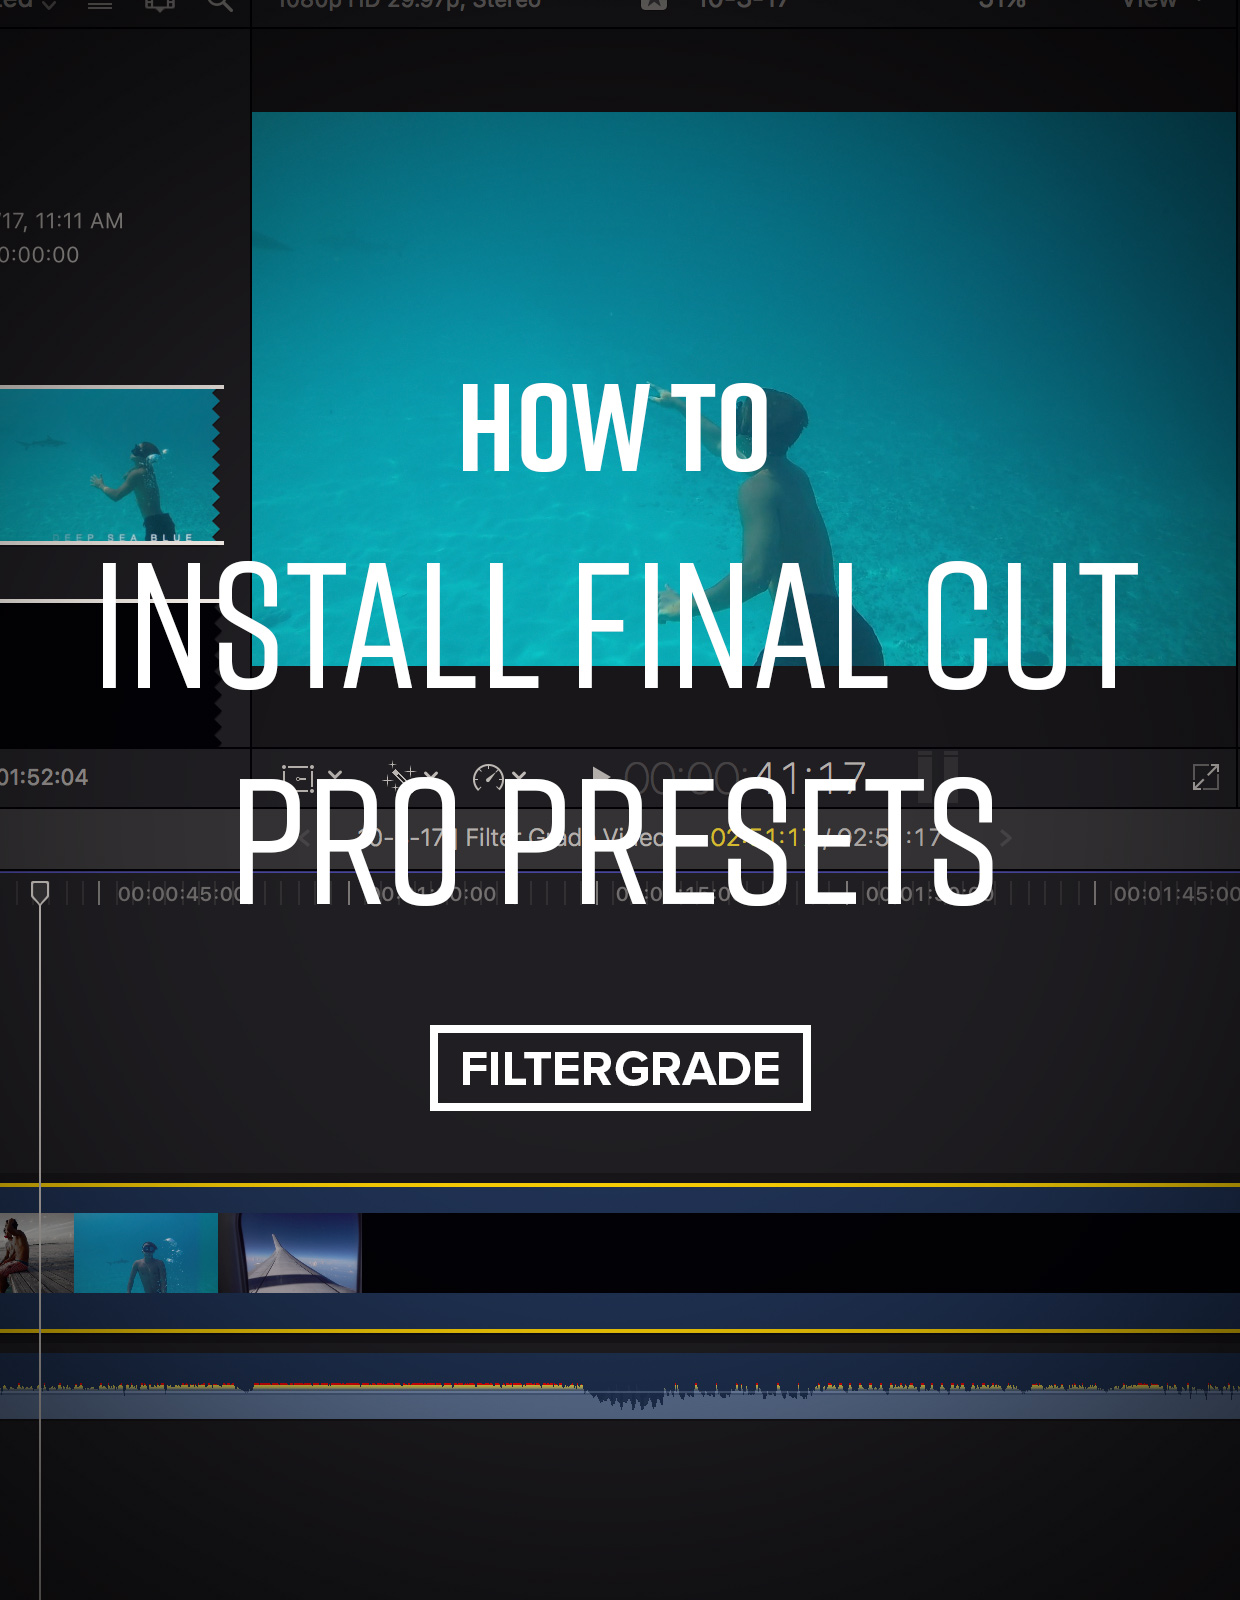 How to Install Final Cut Pro Presets